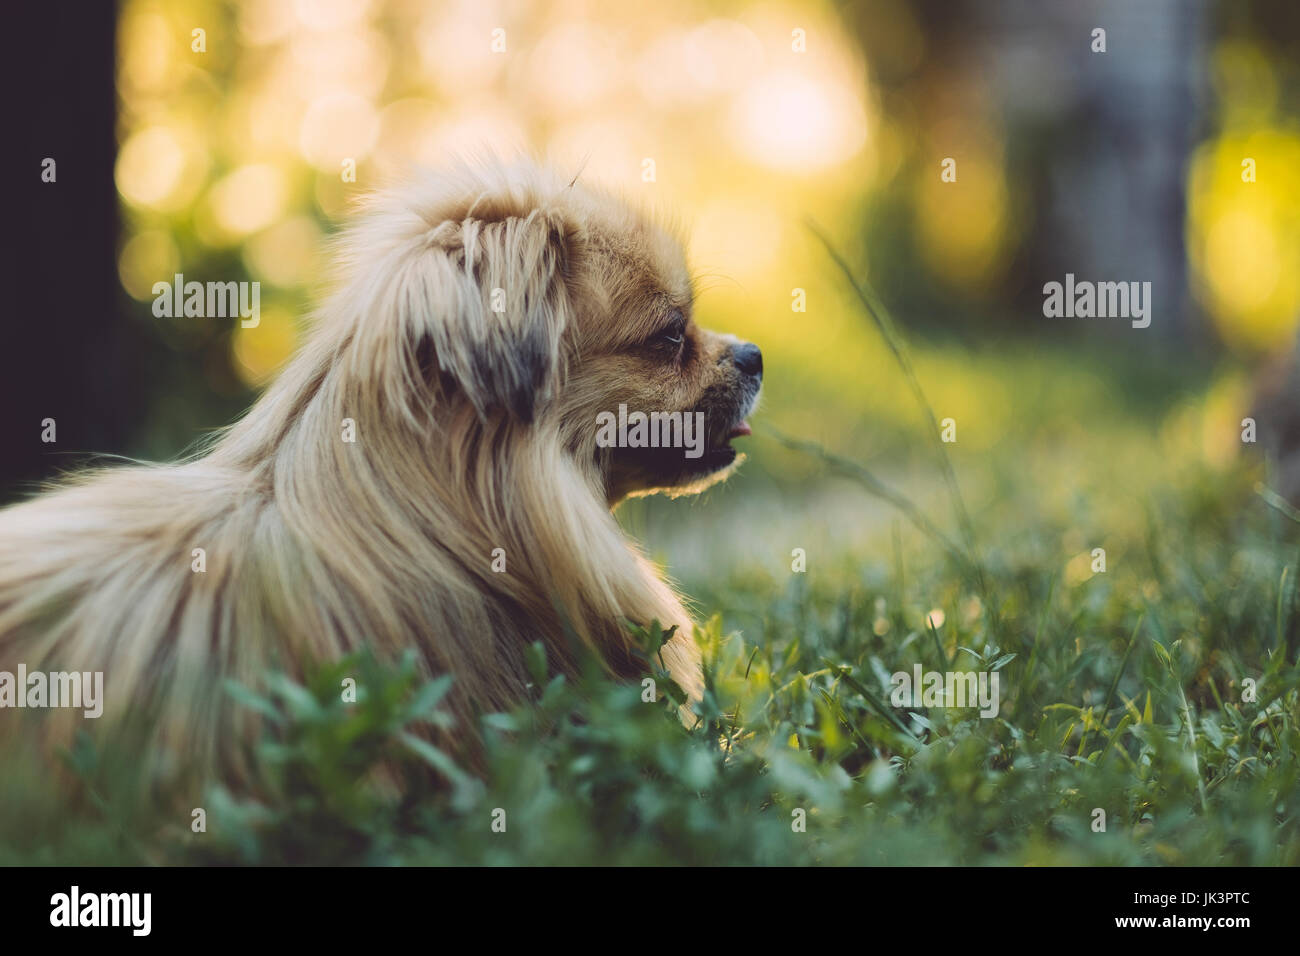 Pekingese dog - Stock Image